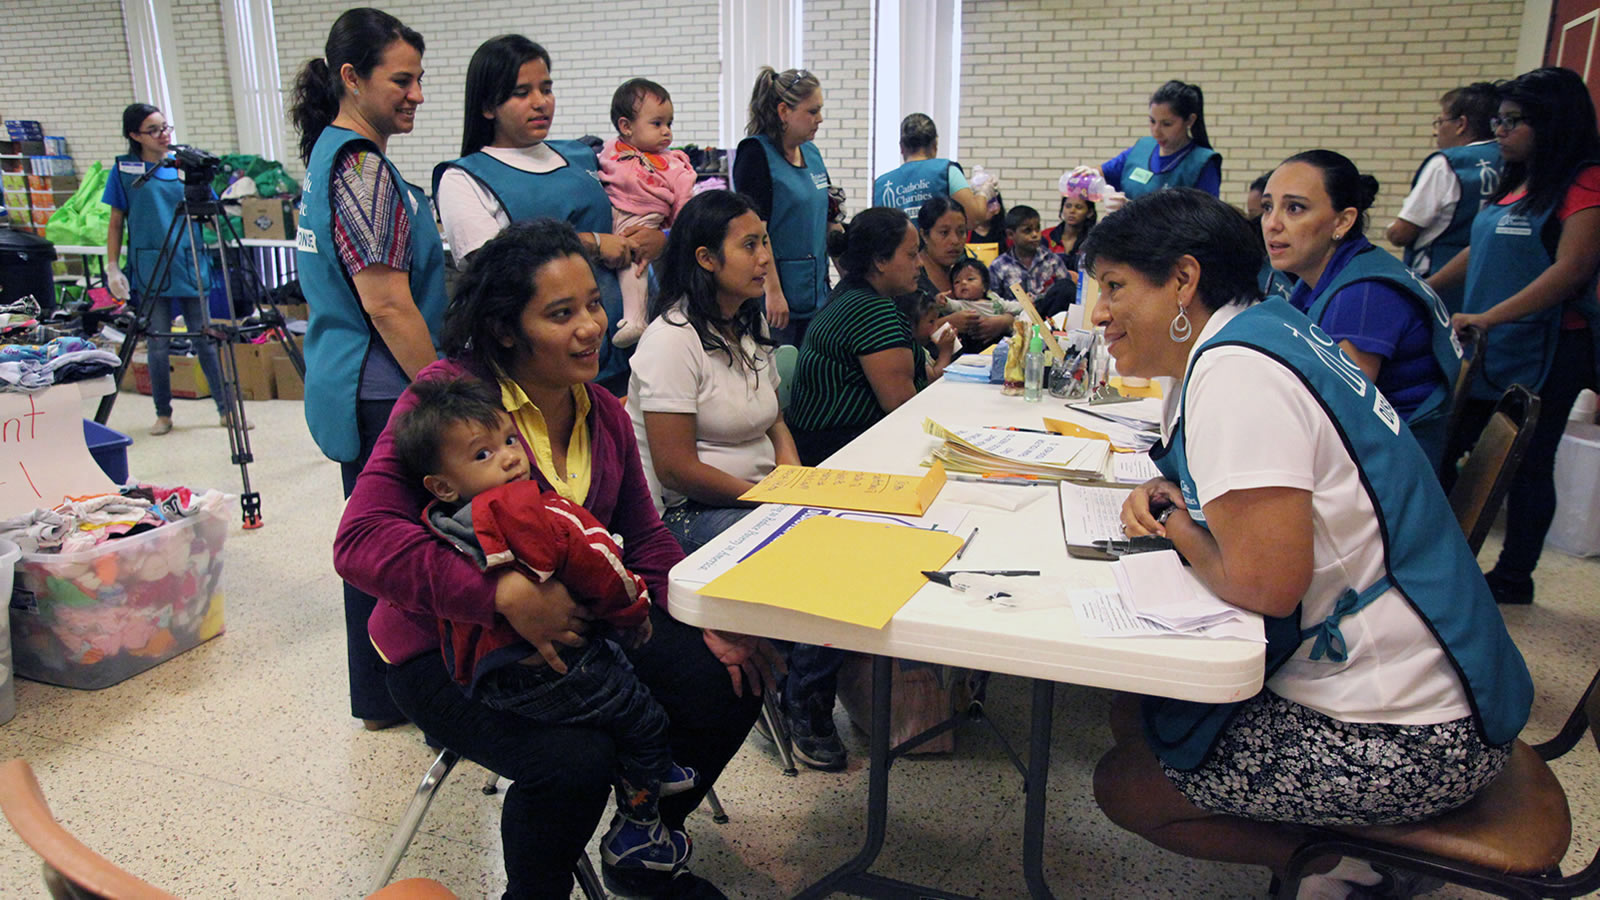 Catholic Charities Disaster Response Team Talks to Central American Refugee Mother and Child in McAllen, Texas